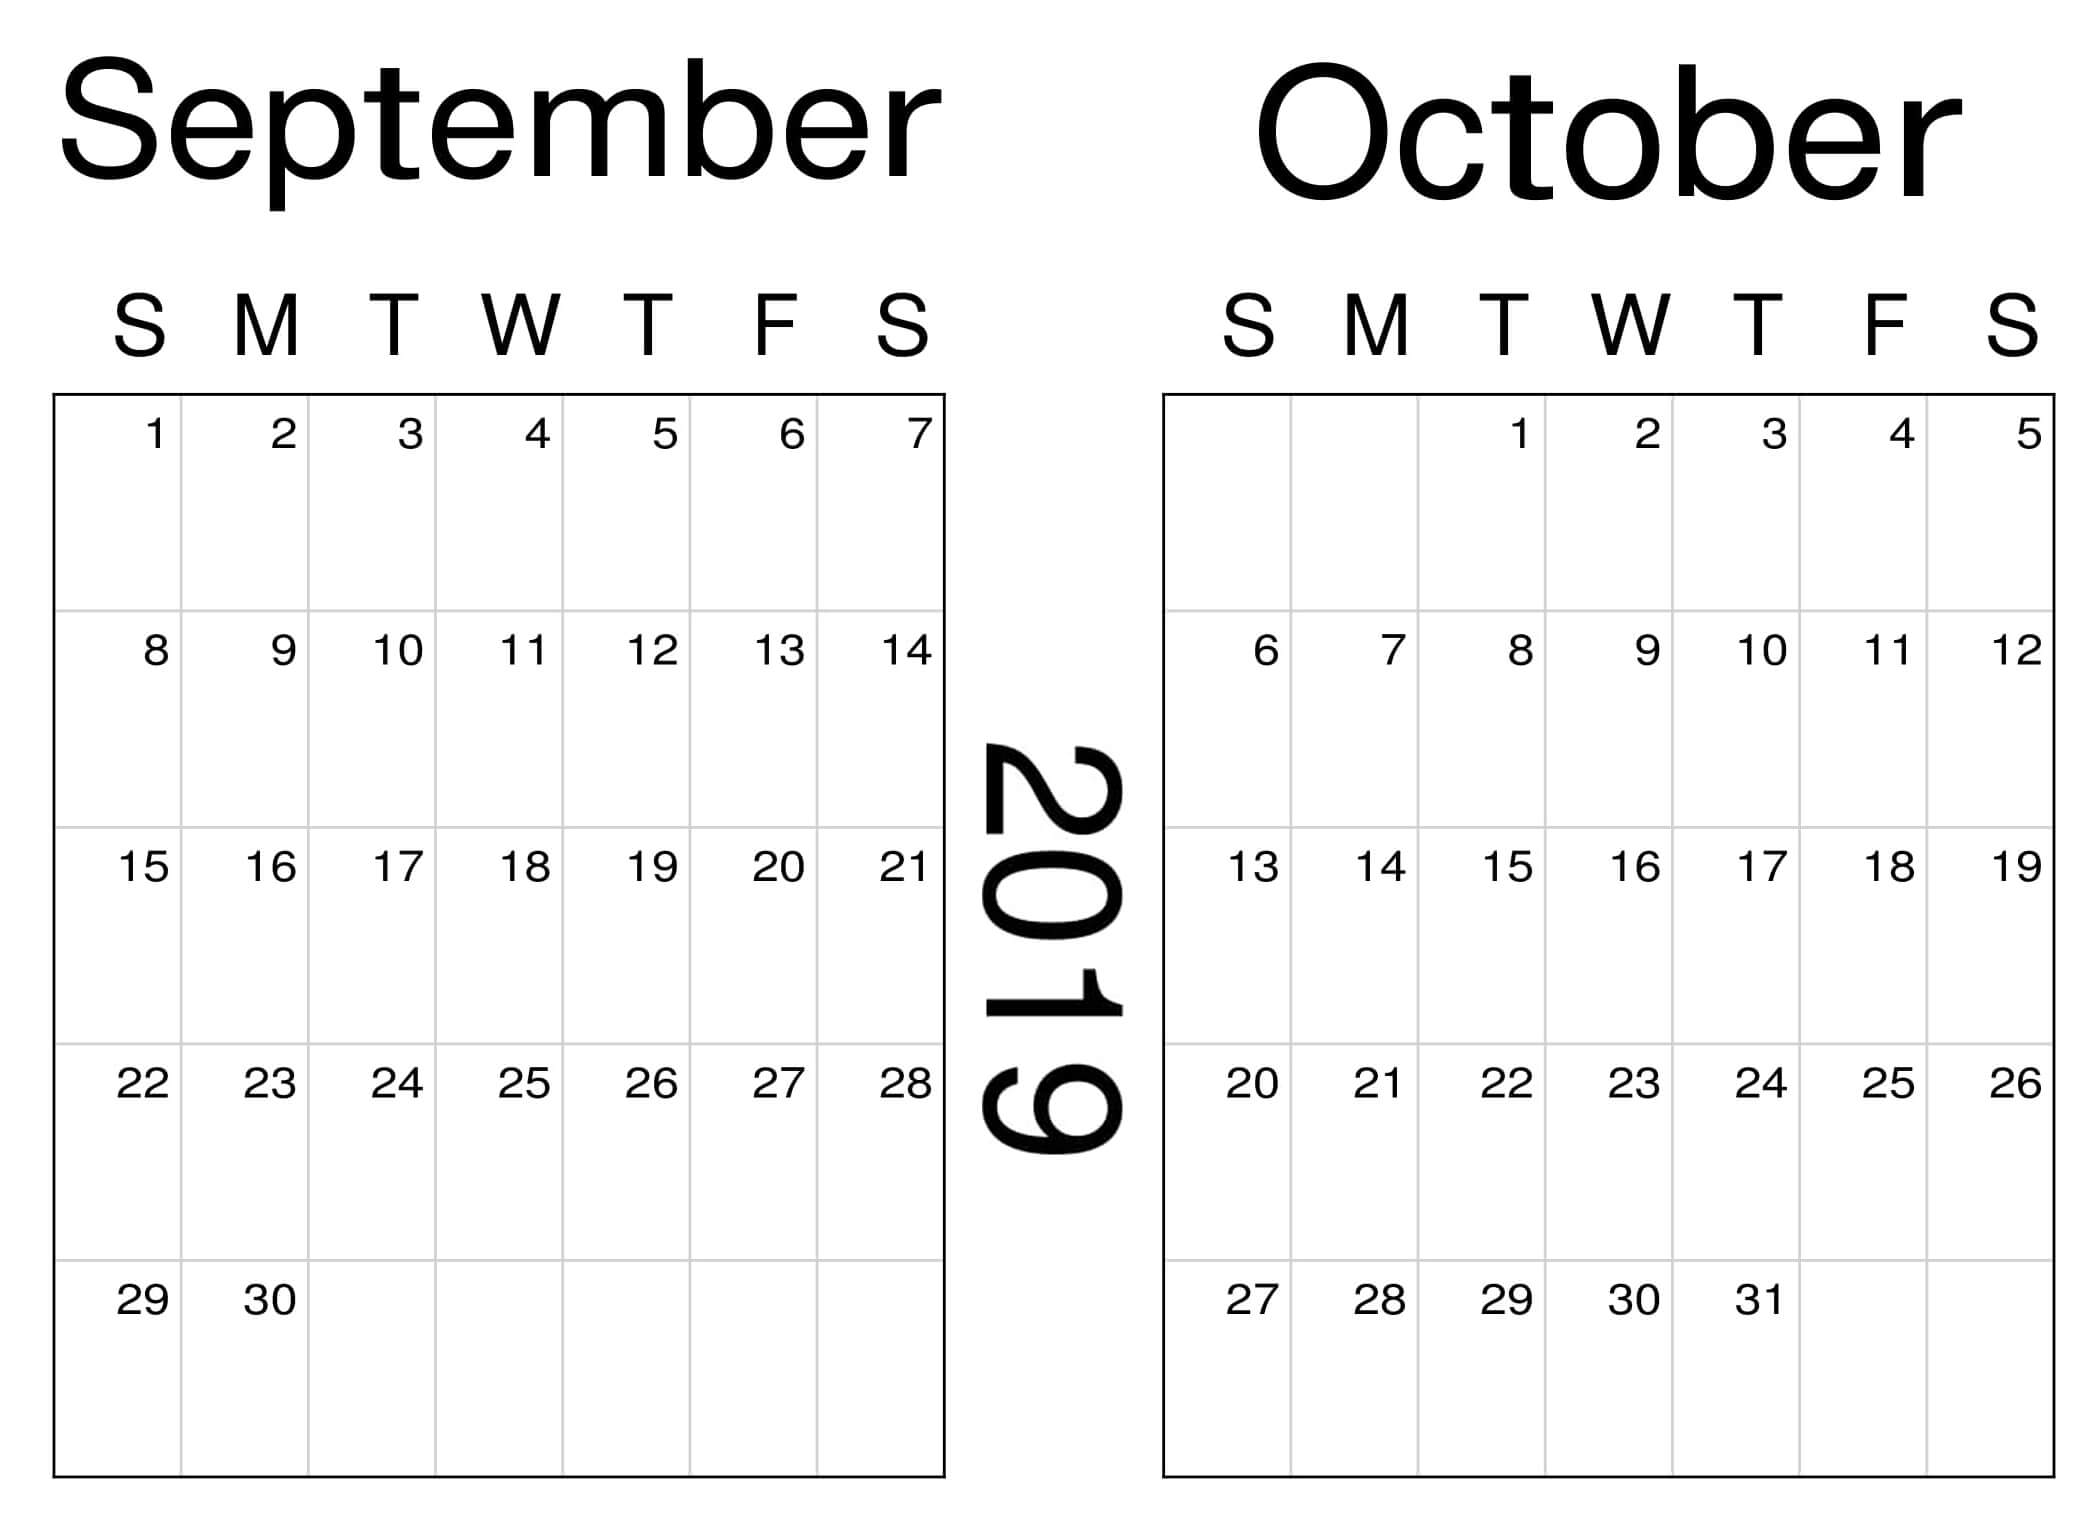 Online September and October 2019 Calendar